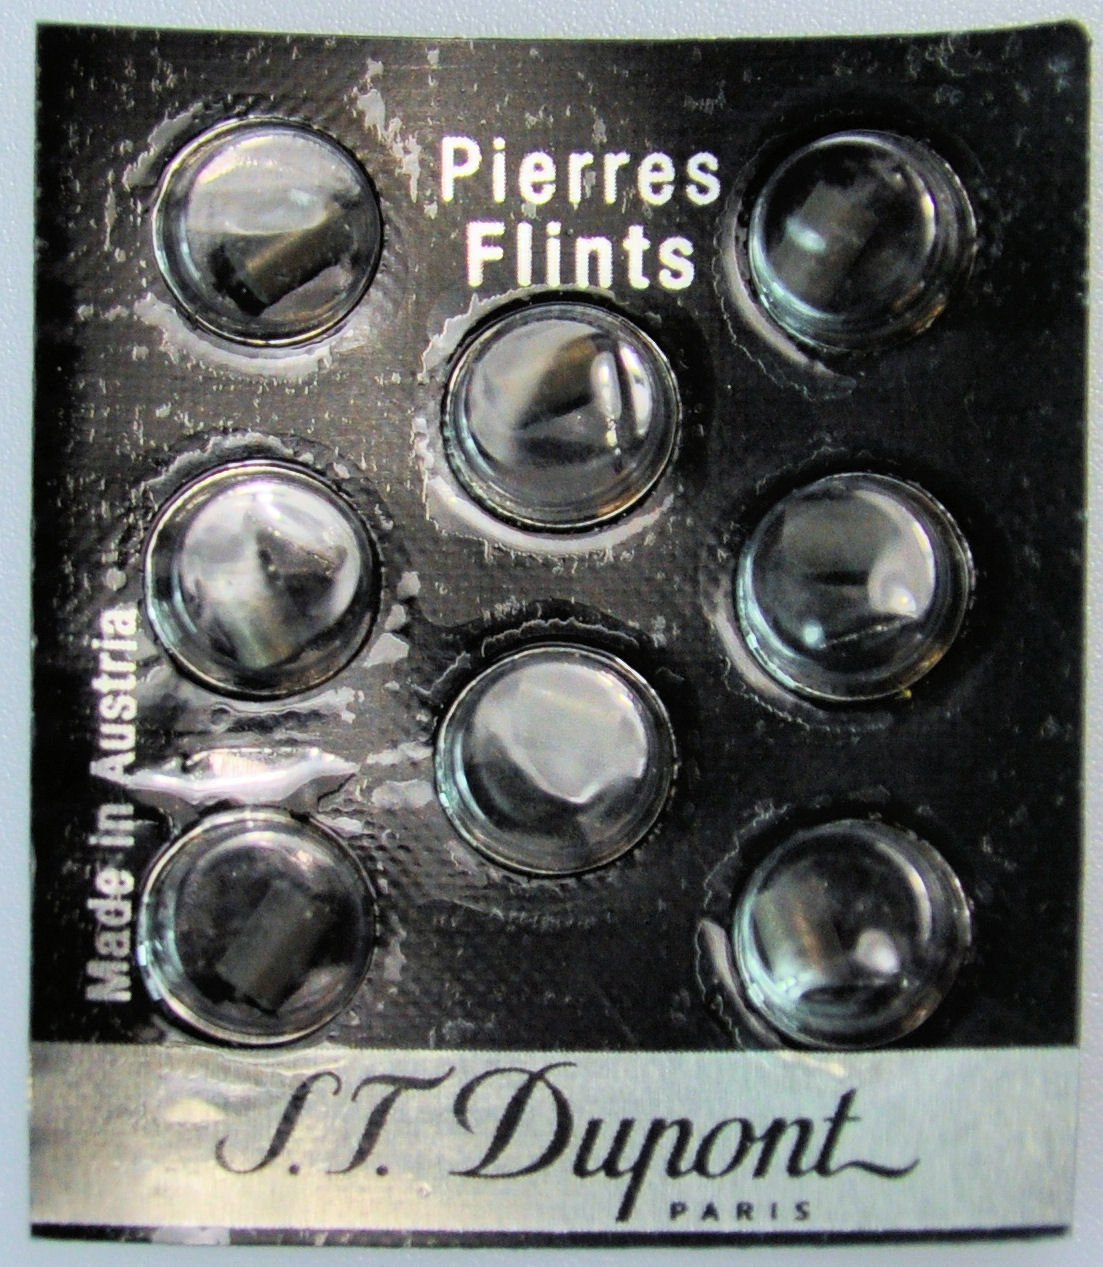 ST Dupont Black Flints